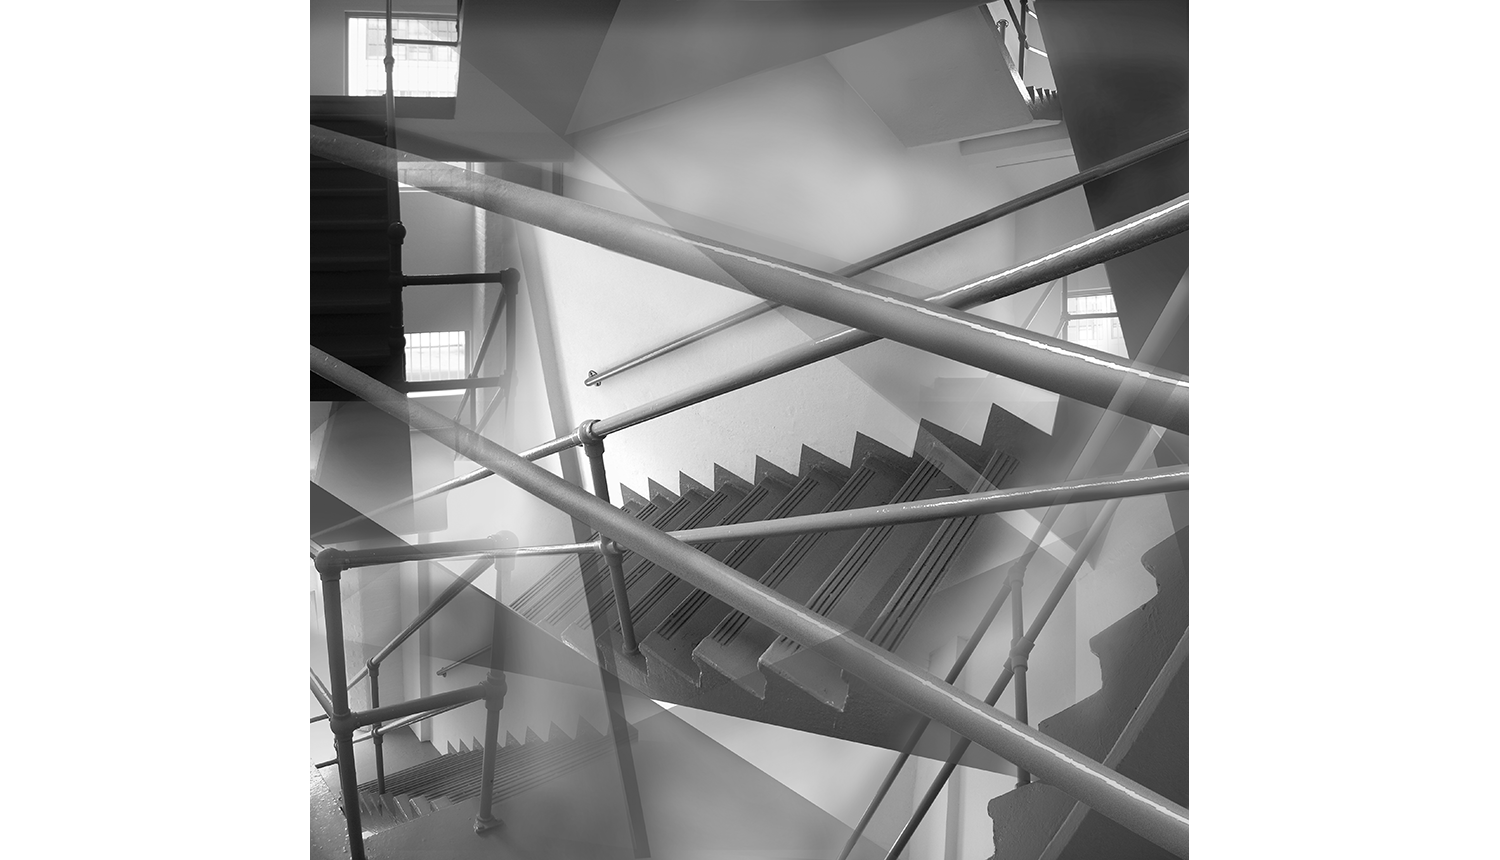 Stairs , 2007, Digital print on paper, 14 x 14""